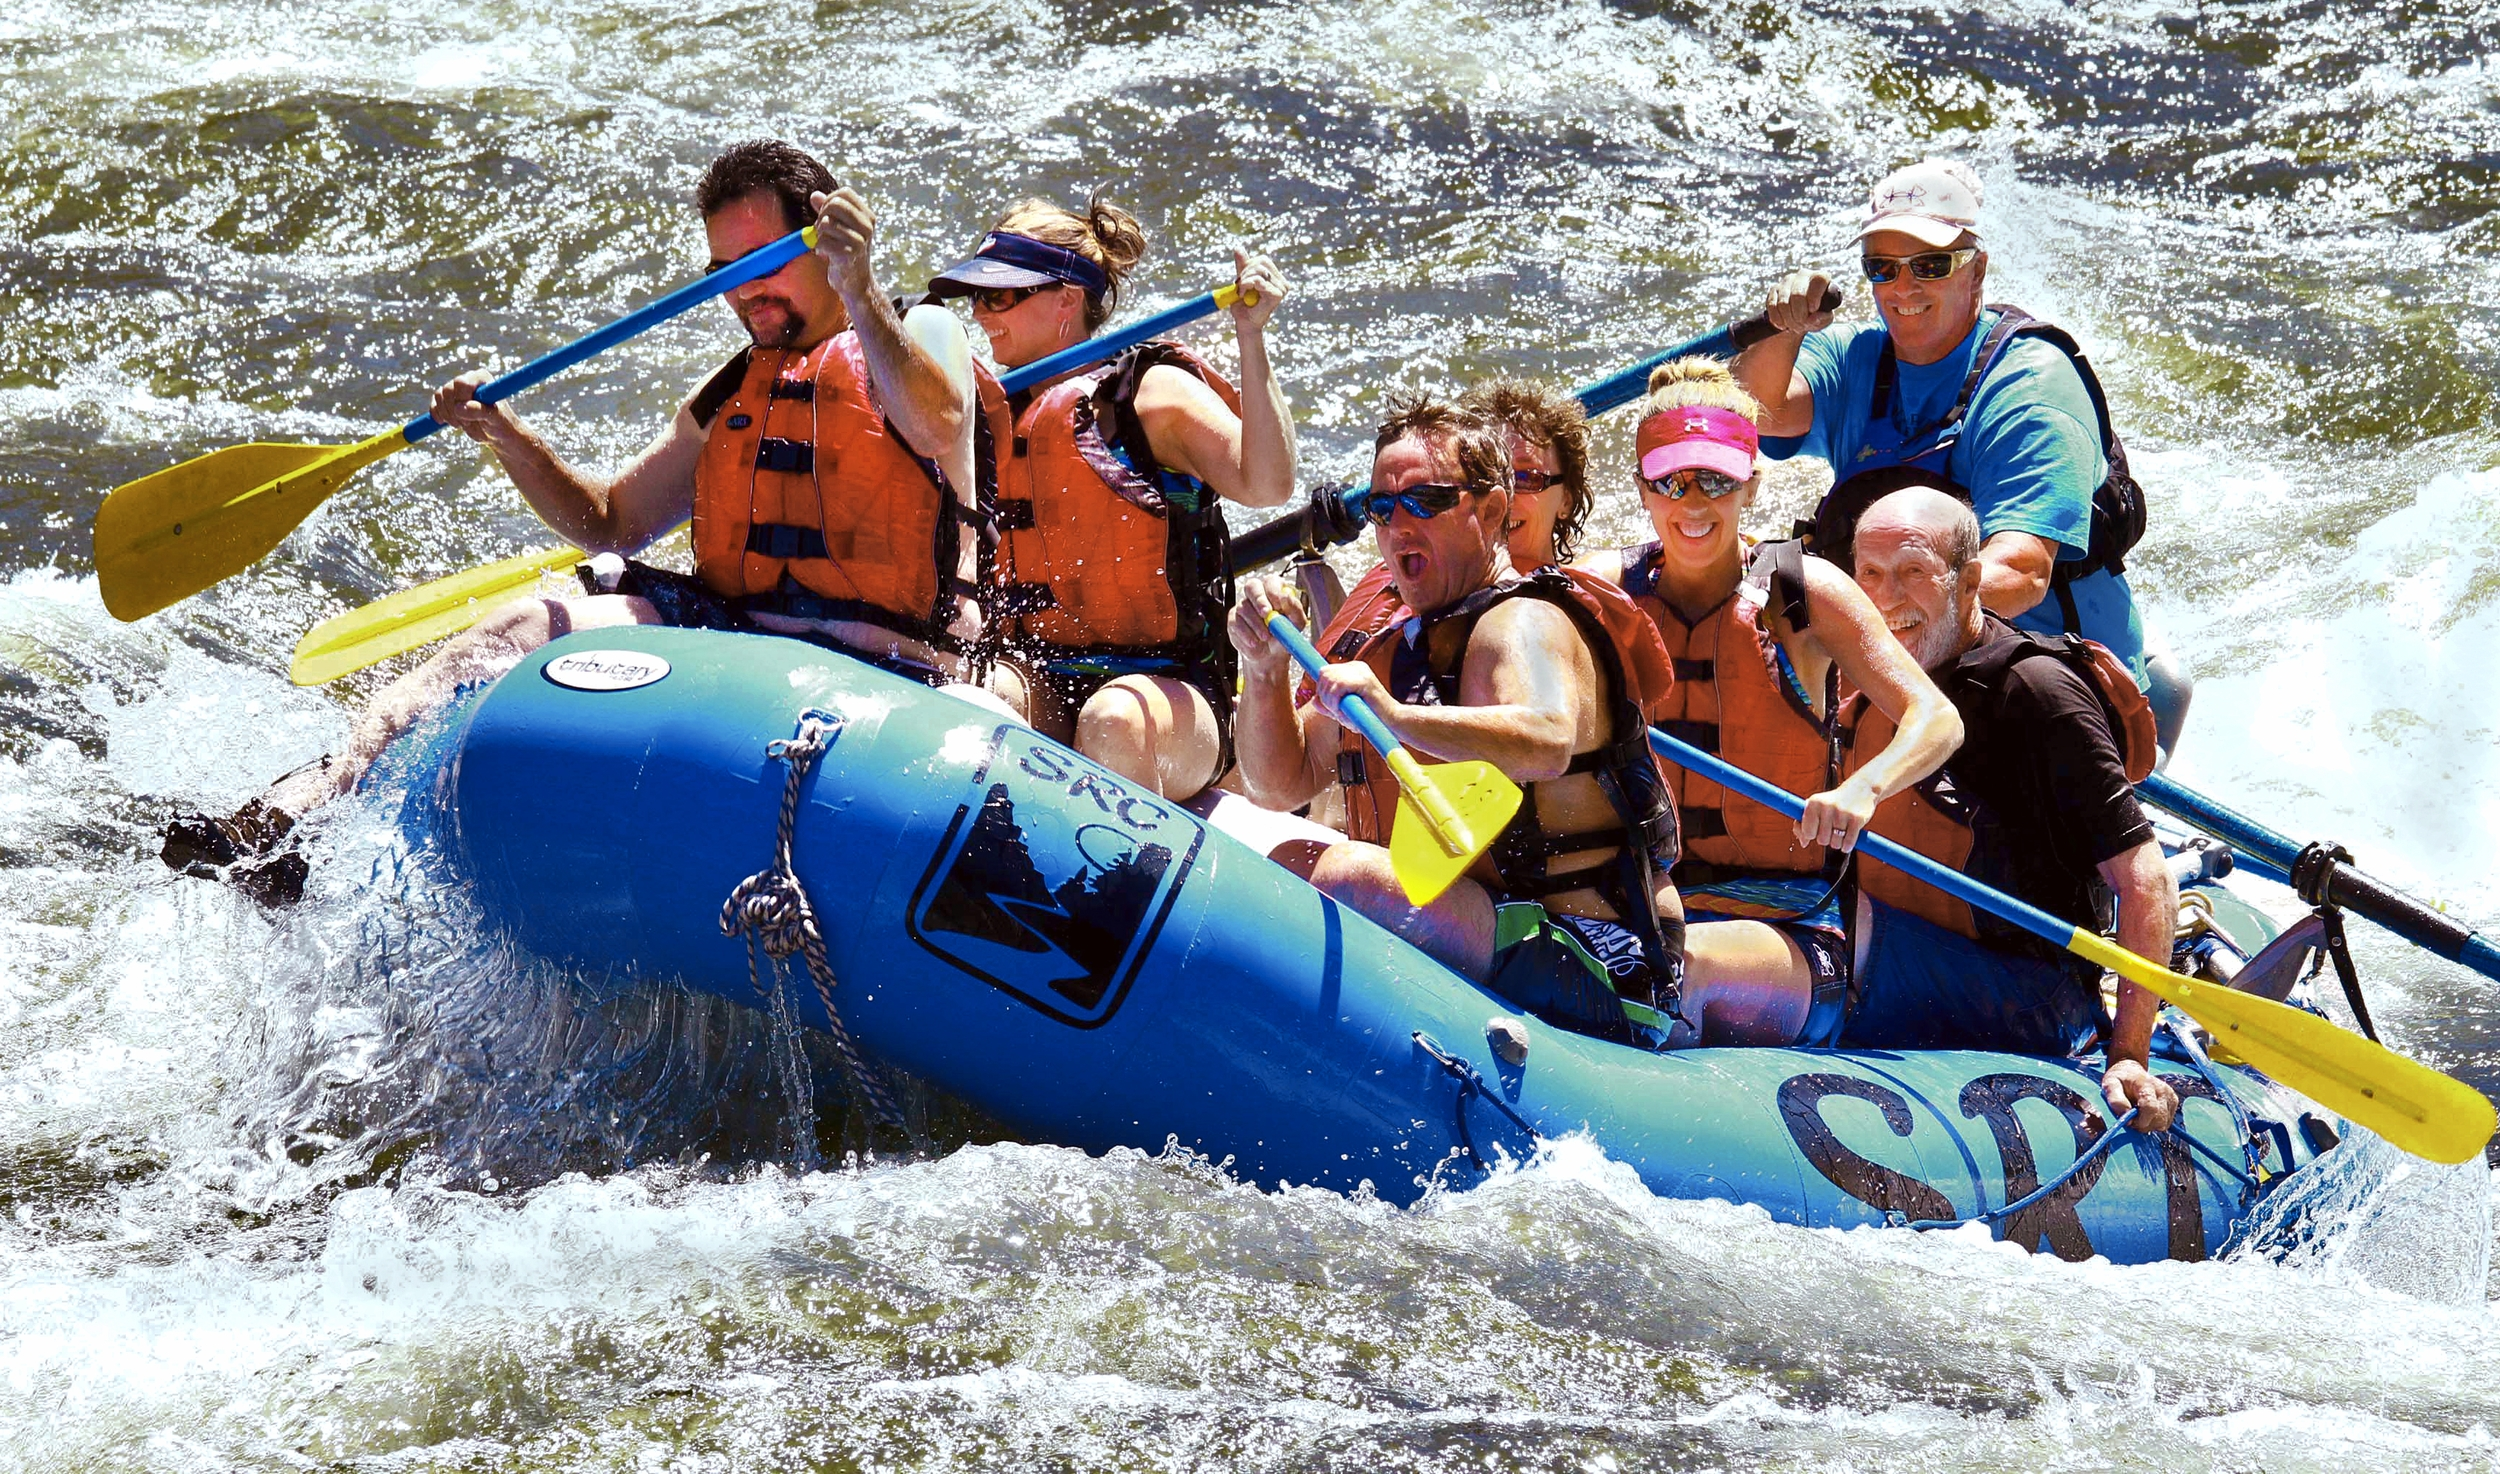 Whitewater rafting at Timezone Rapid on the Salmon River near Riggins Idaho.